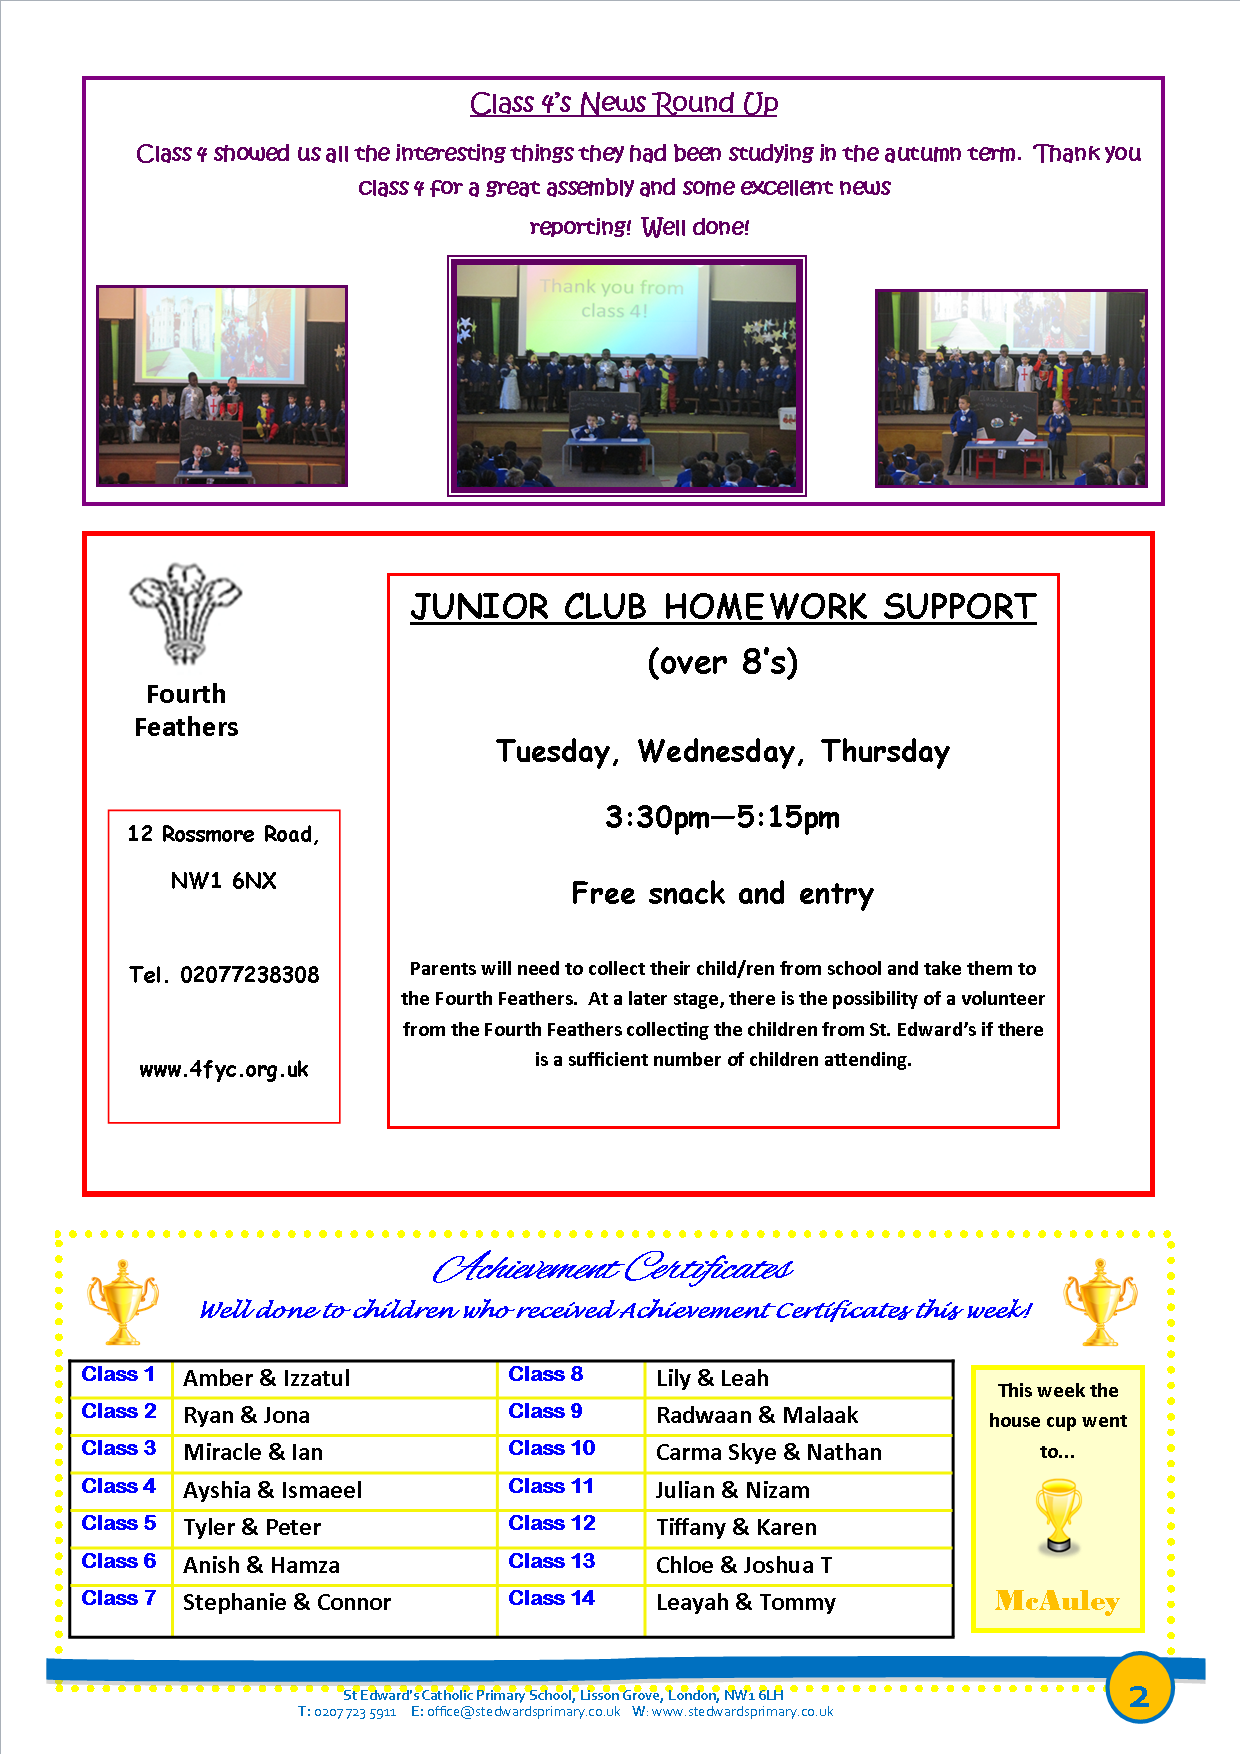 2St Edward's Newsletter Issue 15 16th January 2015.png